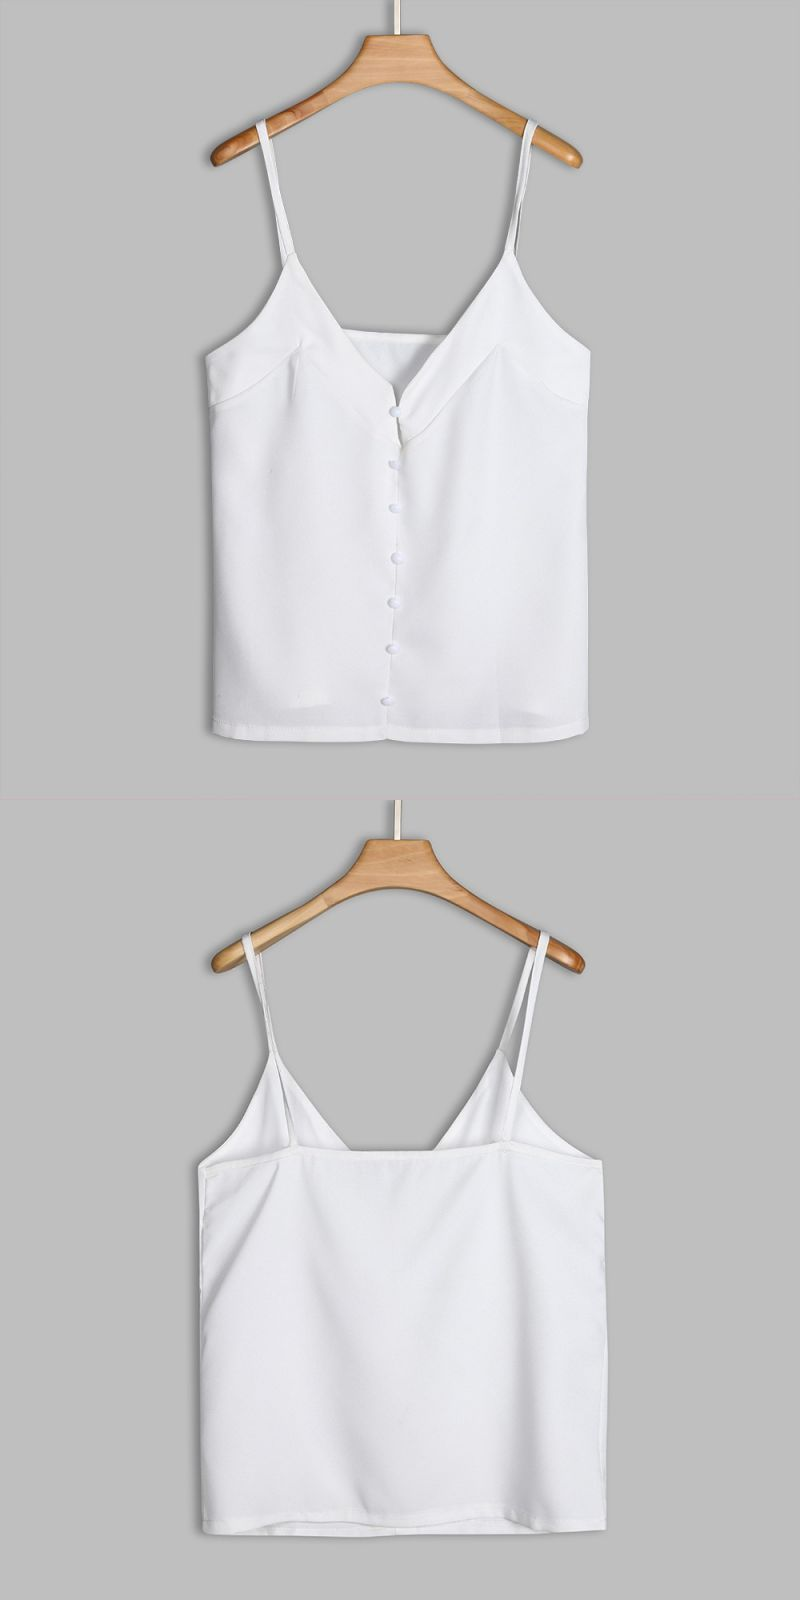 f1aa266ec5d Pearl buttons chiffon tank top for women summer style woman casual white  tops plain v neck